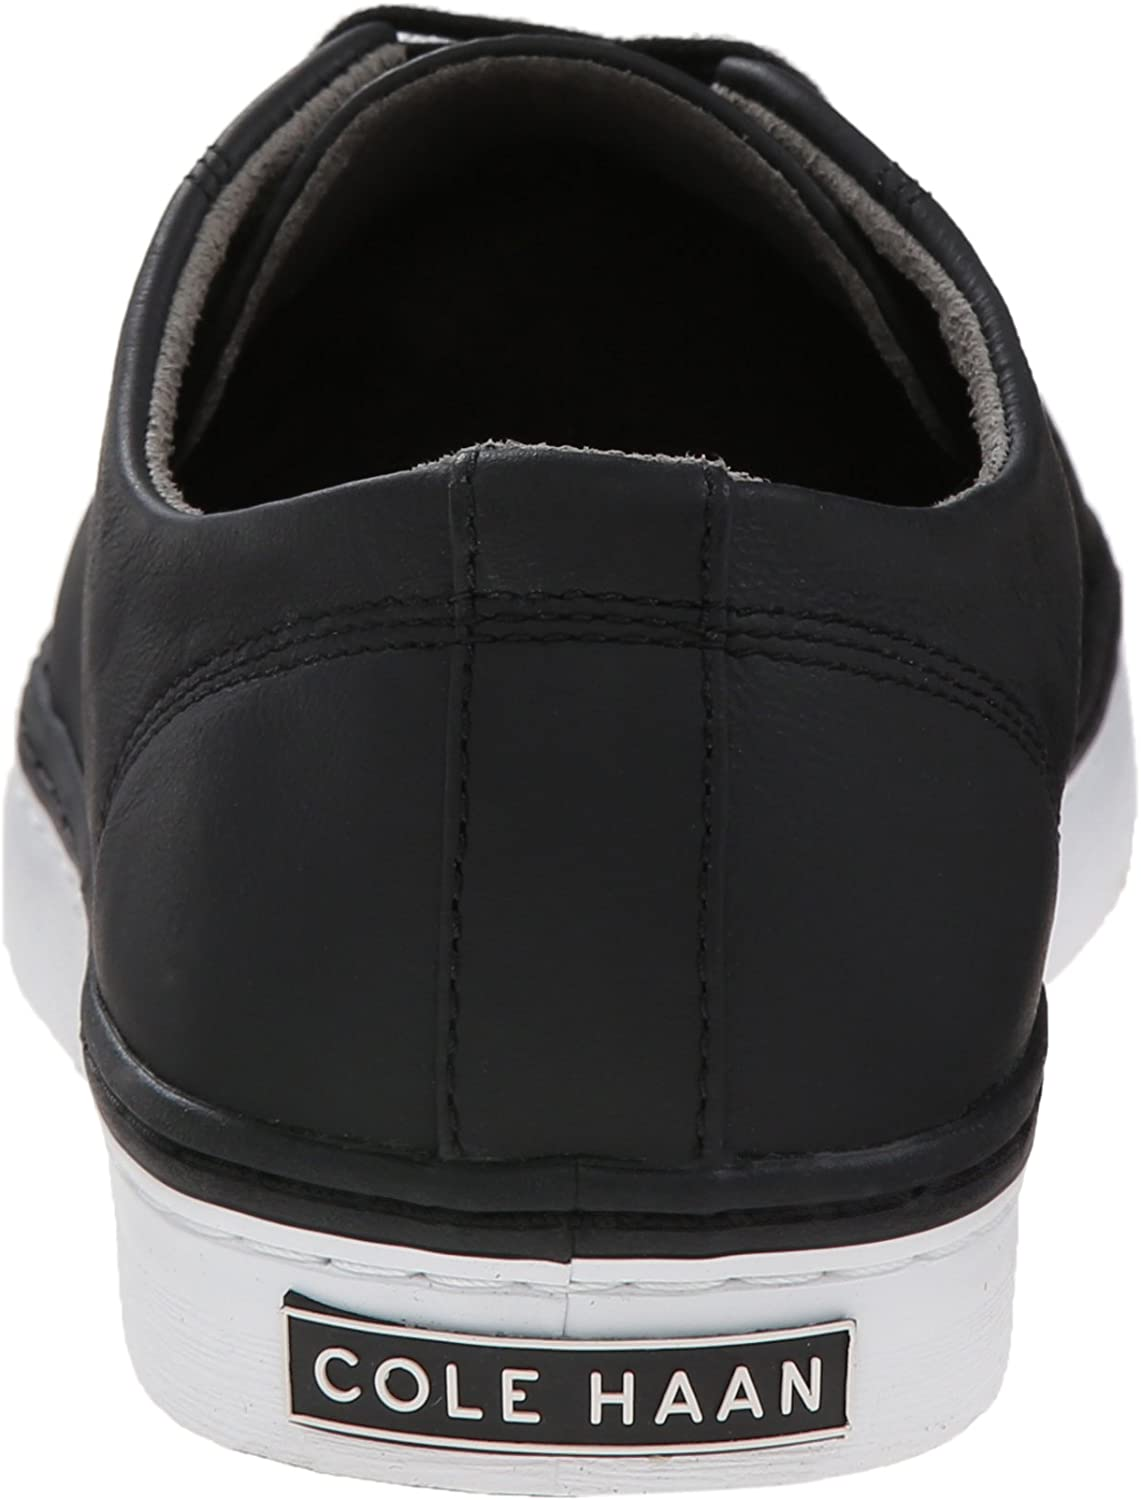 Cole Haan Mens Falmouth Fashion Sneaker